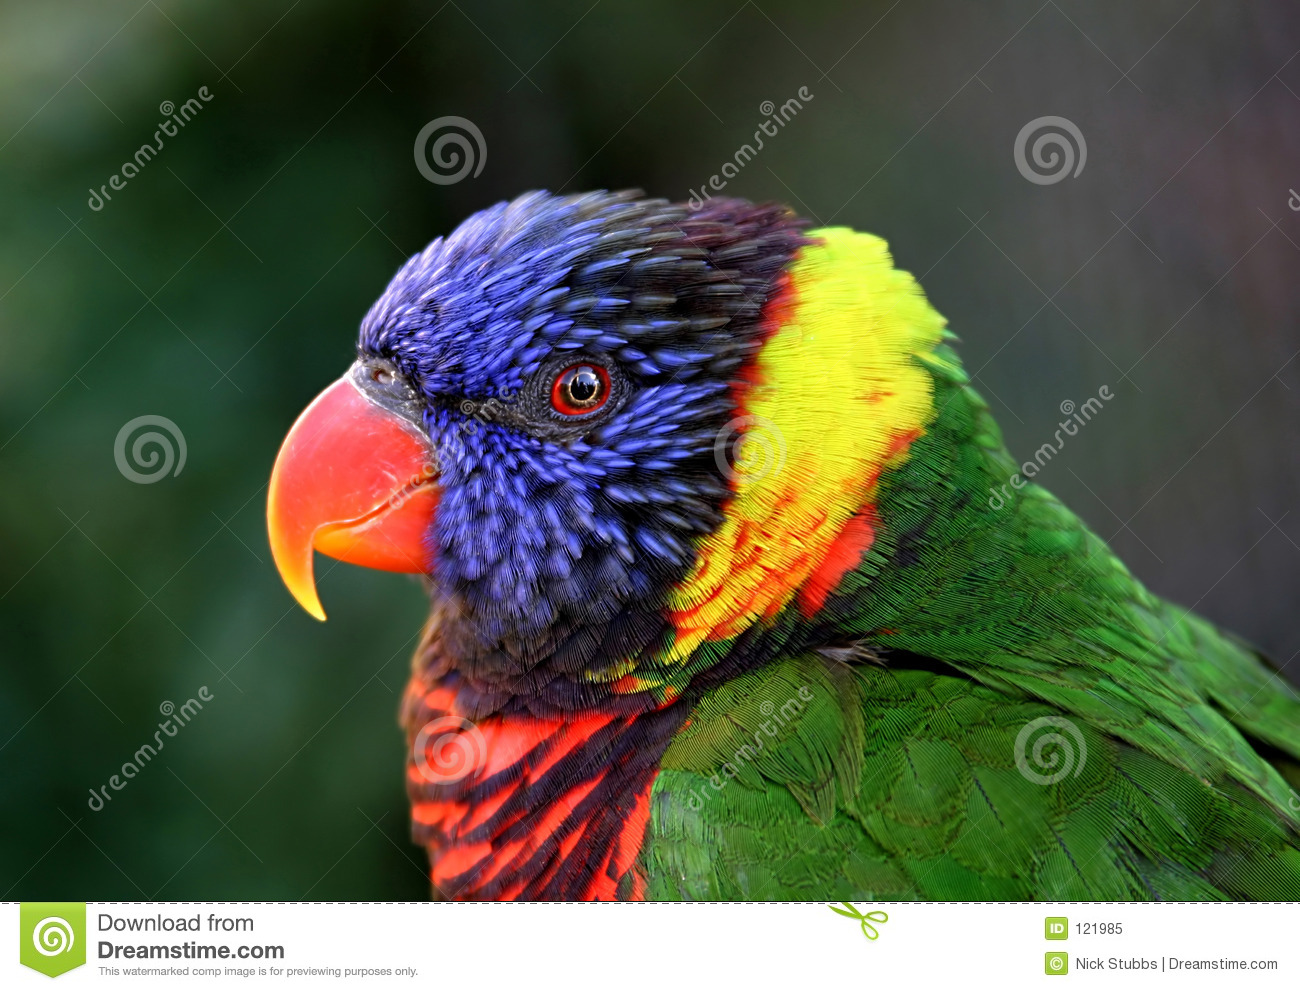 3d Girl Wallpaper Download Beautiful Clean Clear Shot Of Colorful Parrot Royalty